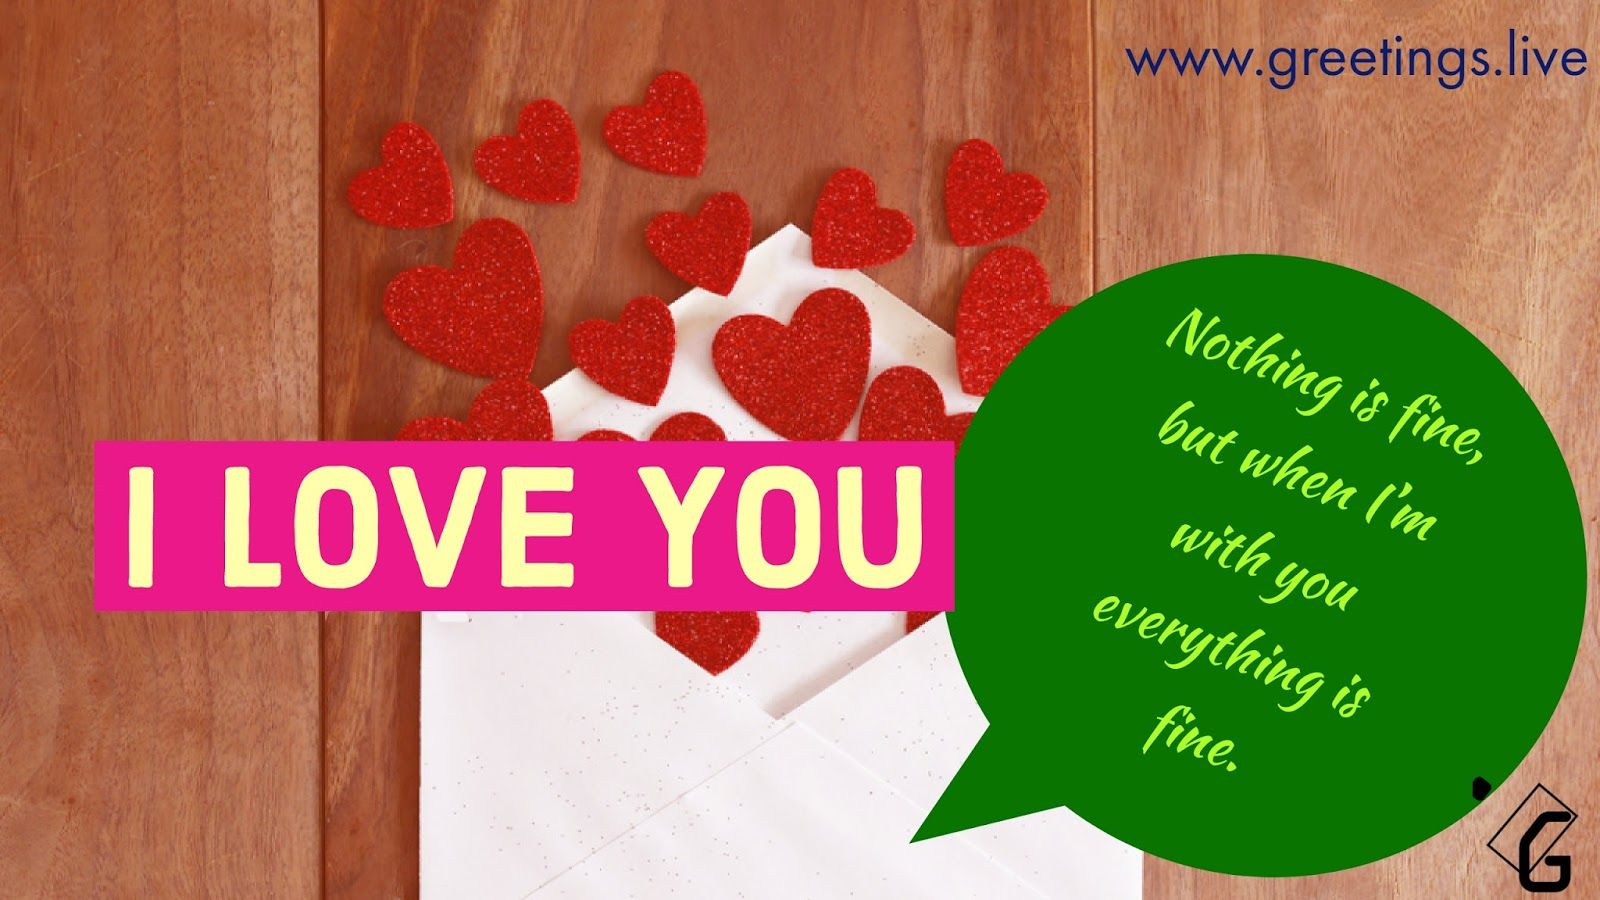 I Love You Love Letters Greetings Hd Good Words Xyz Pinterest